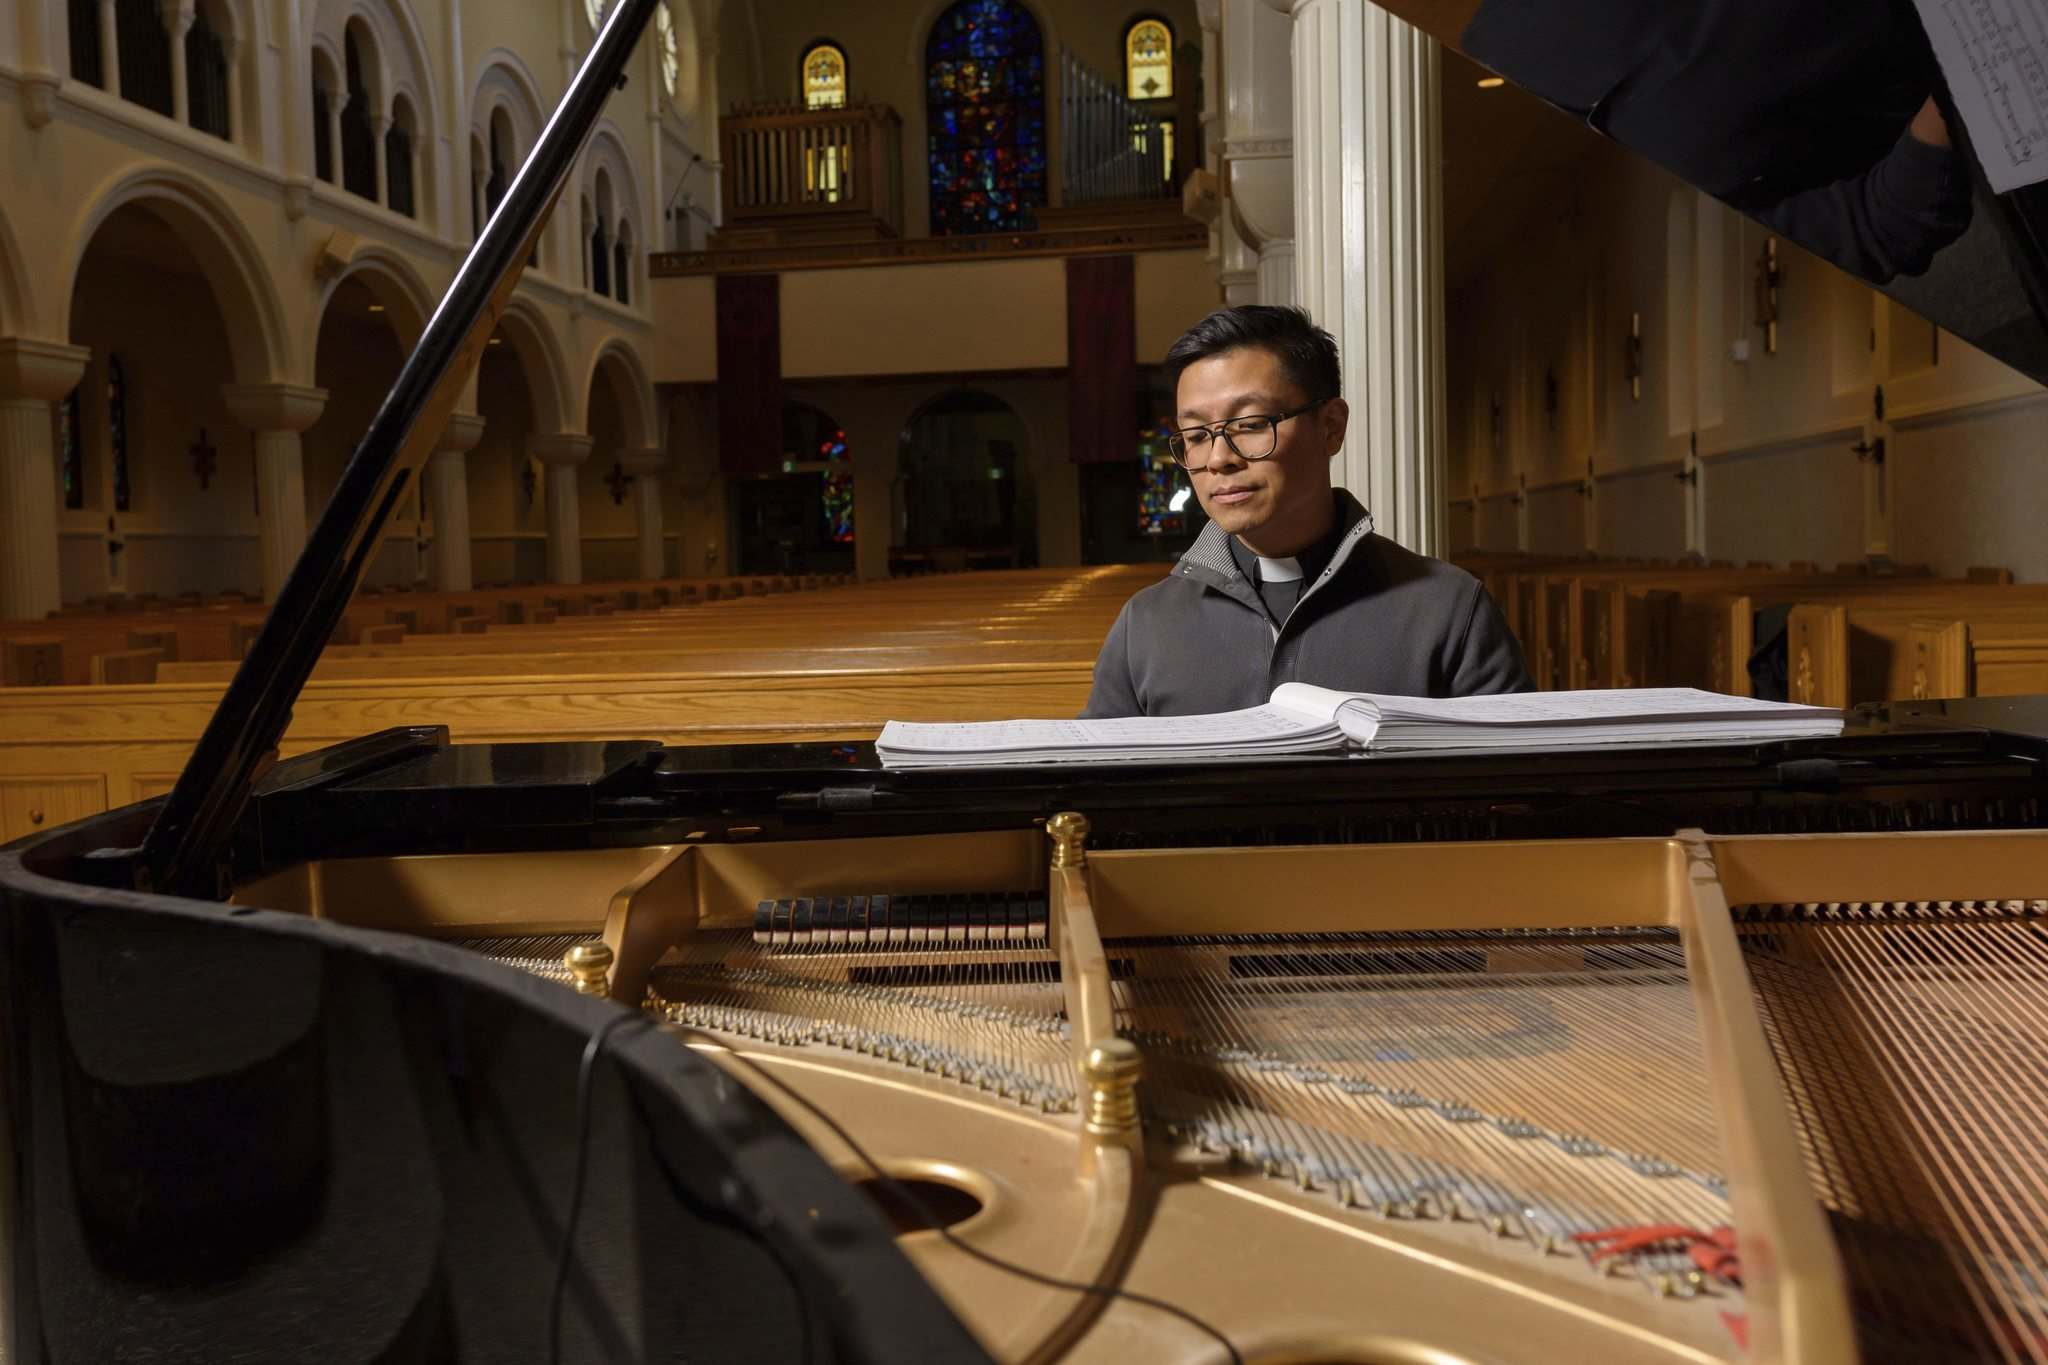 JESSE BOILY / WINNIPEG FREE PRESS</p><p>Rev. Geoffrey Angeles sits at the piano to an empty church on Thursday, March 19, 2020.